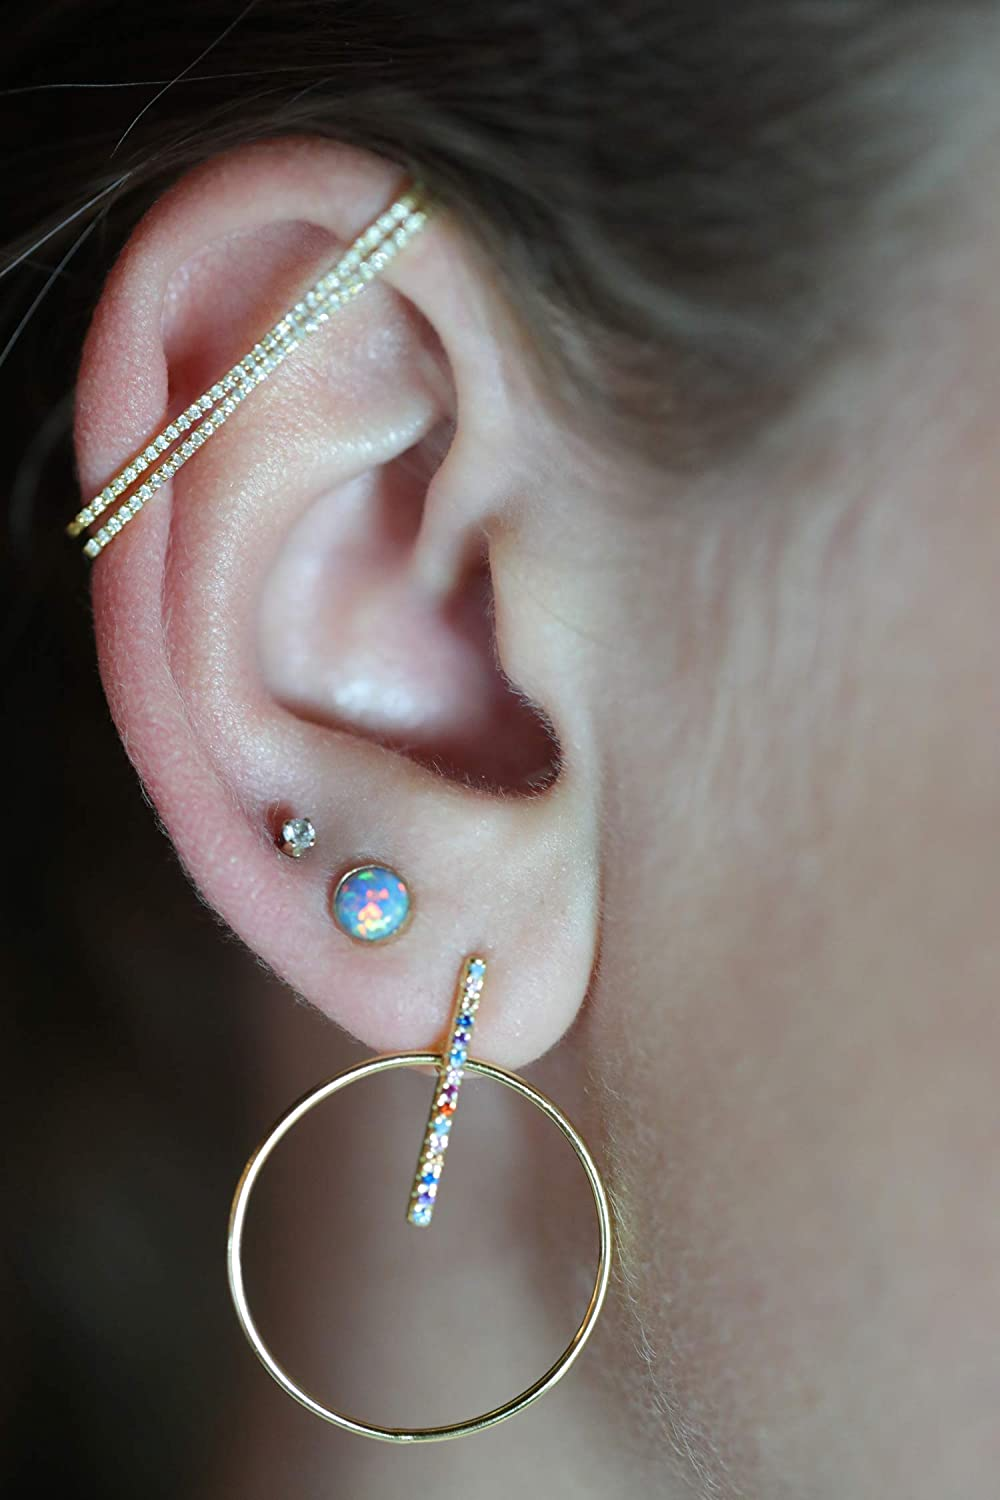 Diamond Cartilage Bar Cuff Earring- NO PIERCING- Real Diamonds- 14k gold over Sterling Silver